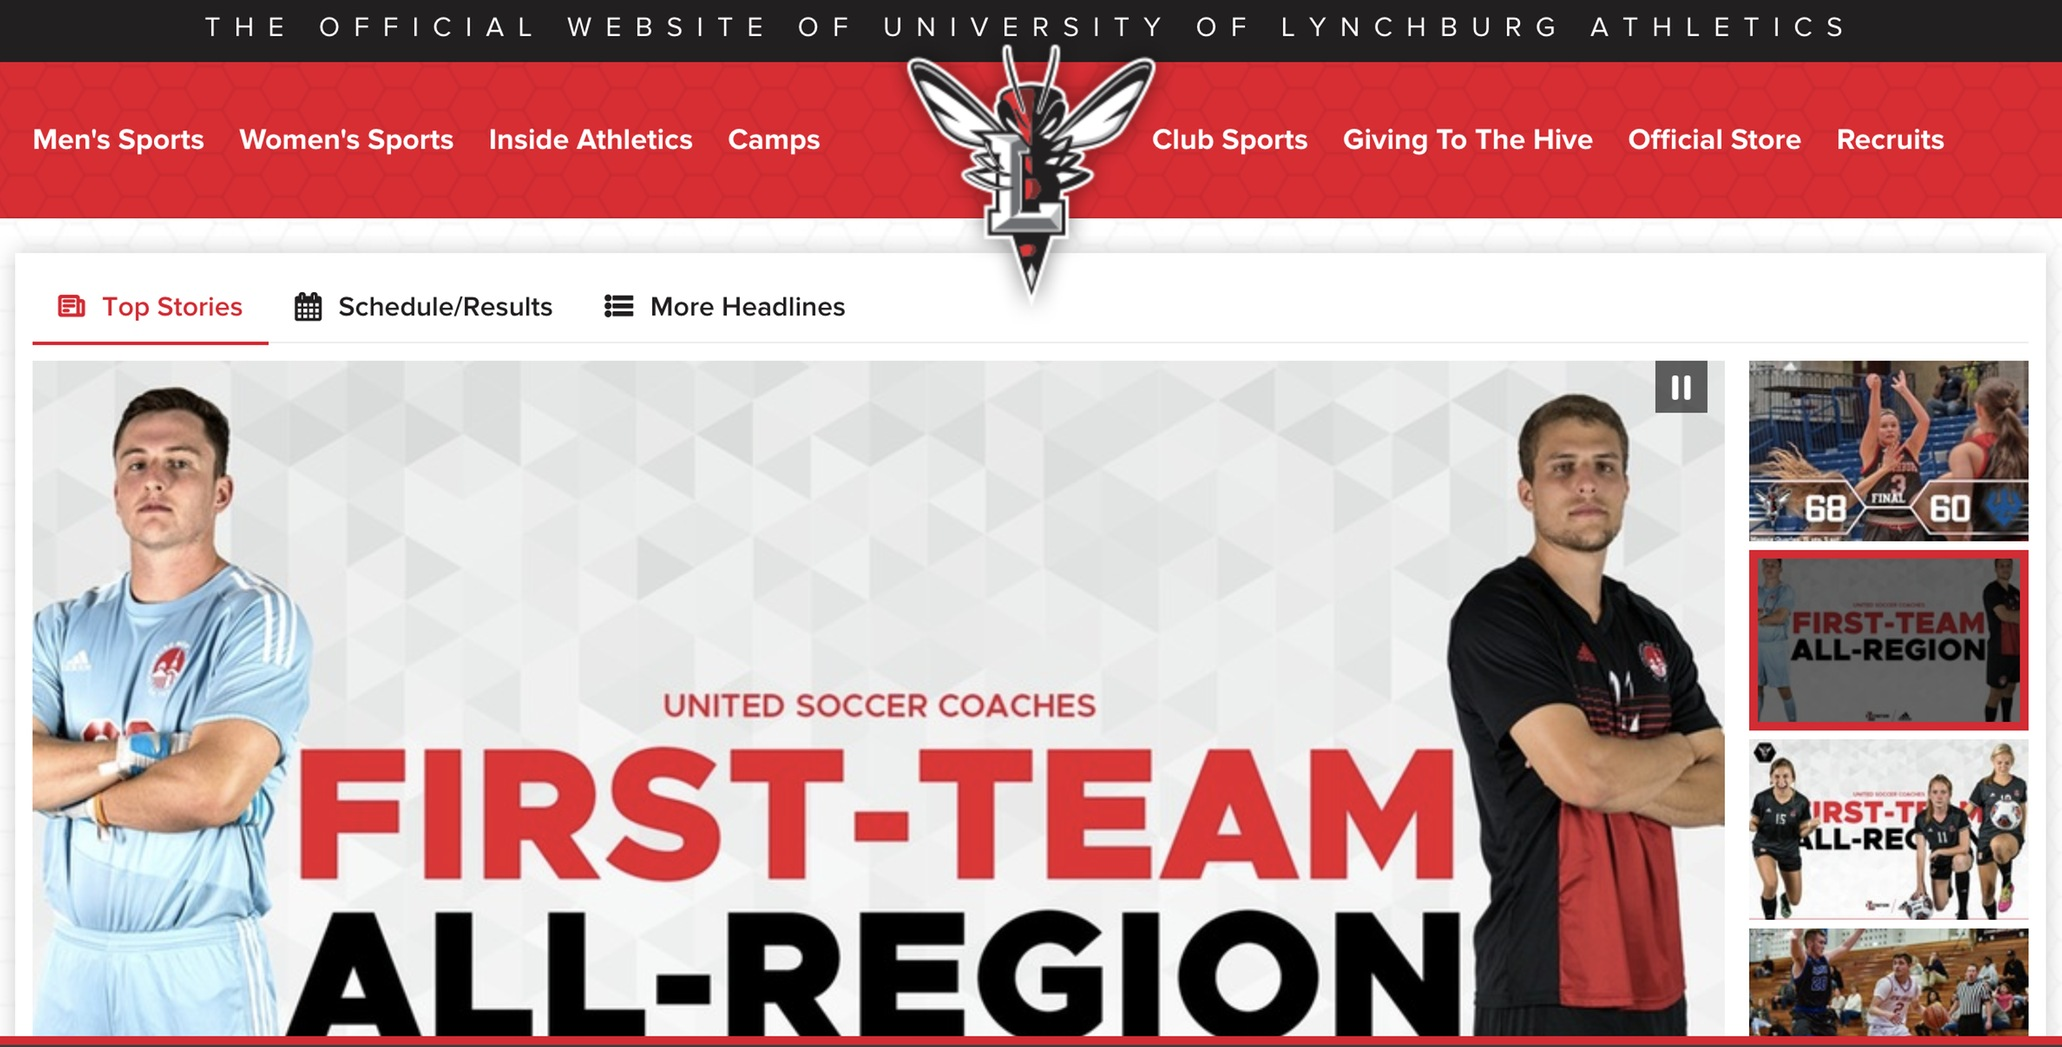 Screencaptured image of LynchburgSports.com web redesign showing men's soccer headline at center.